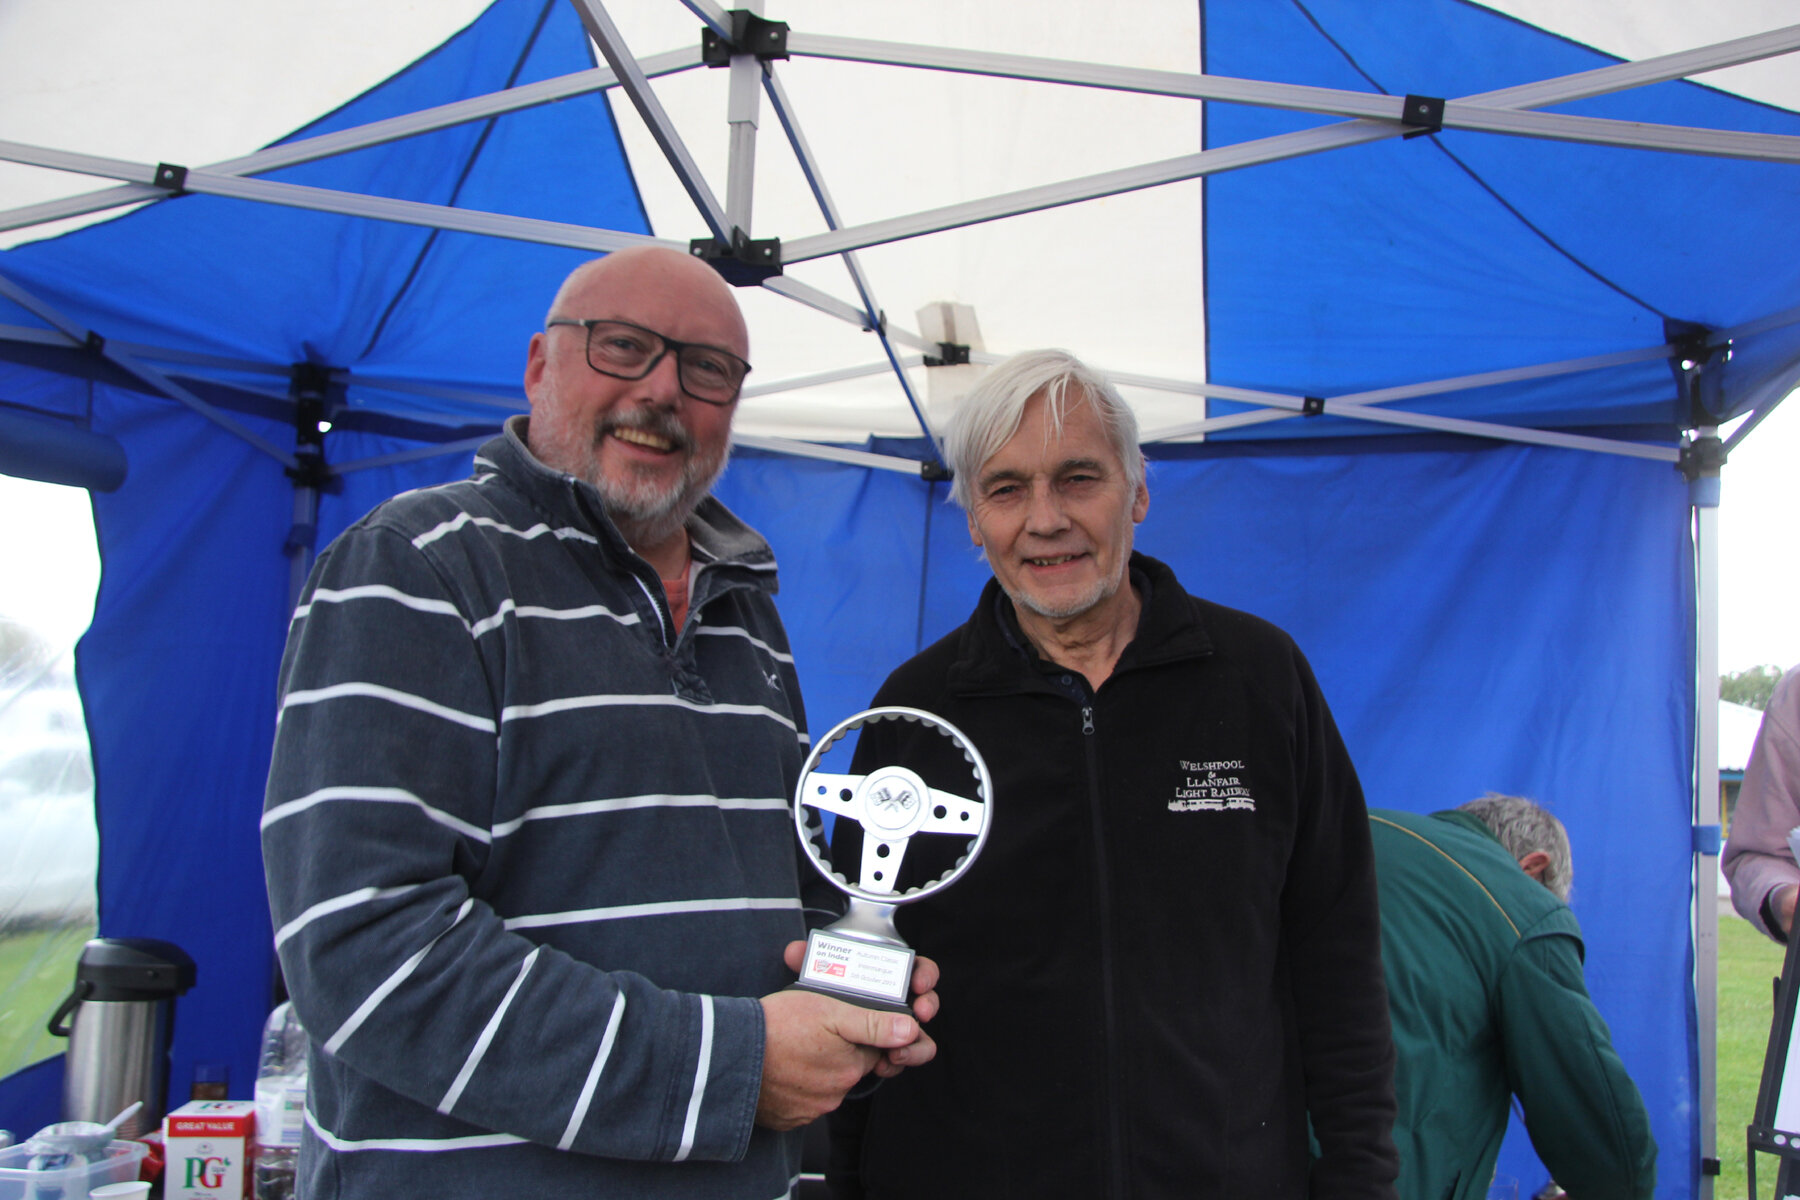 Mark Hoble receives the Index of Performance award for the Castle Combe race.